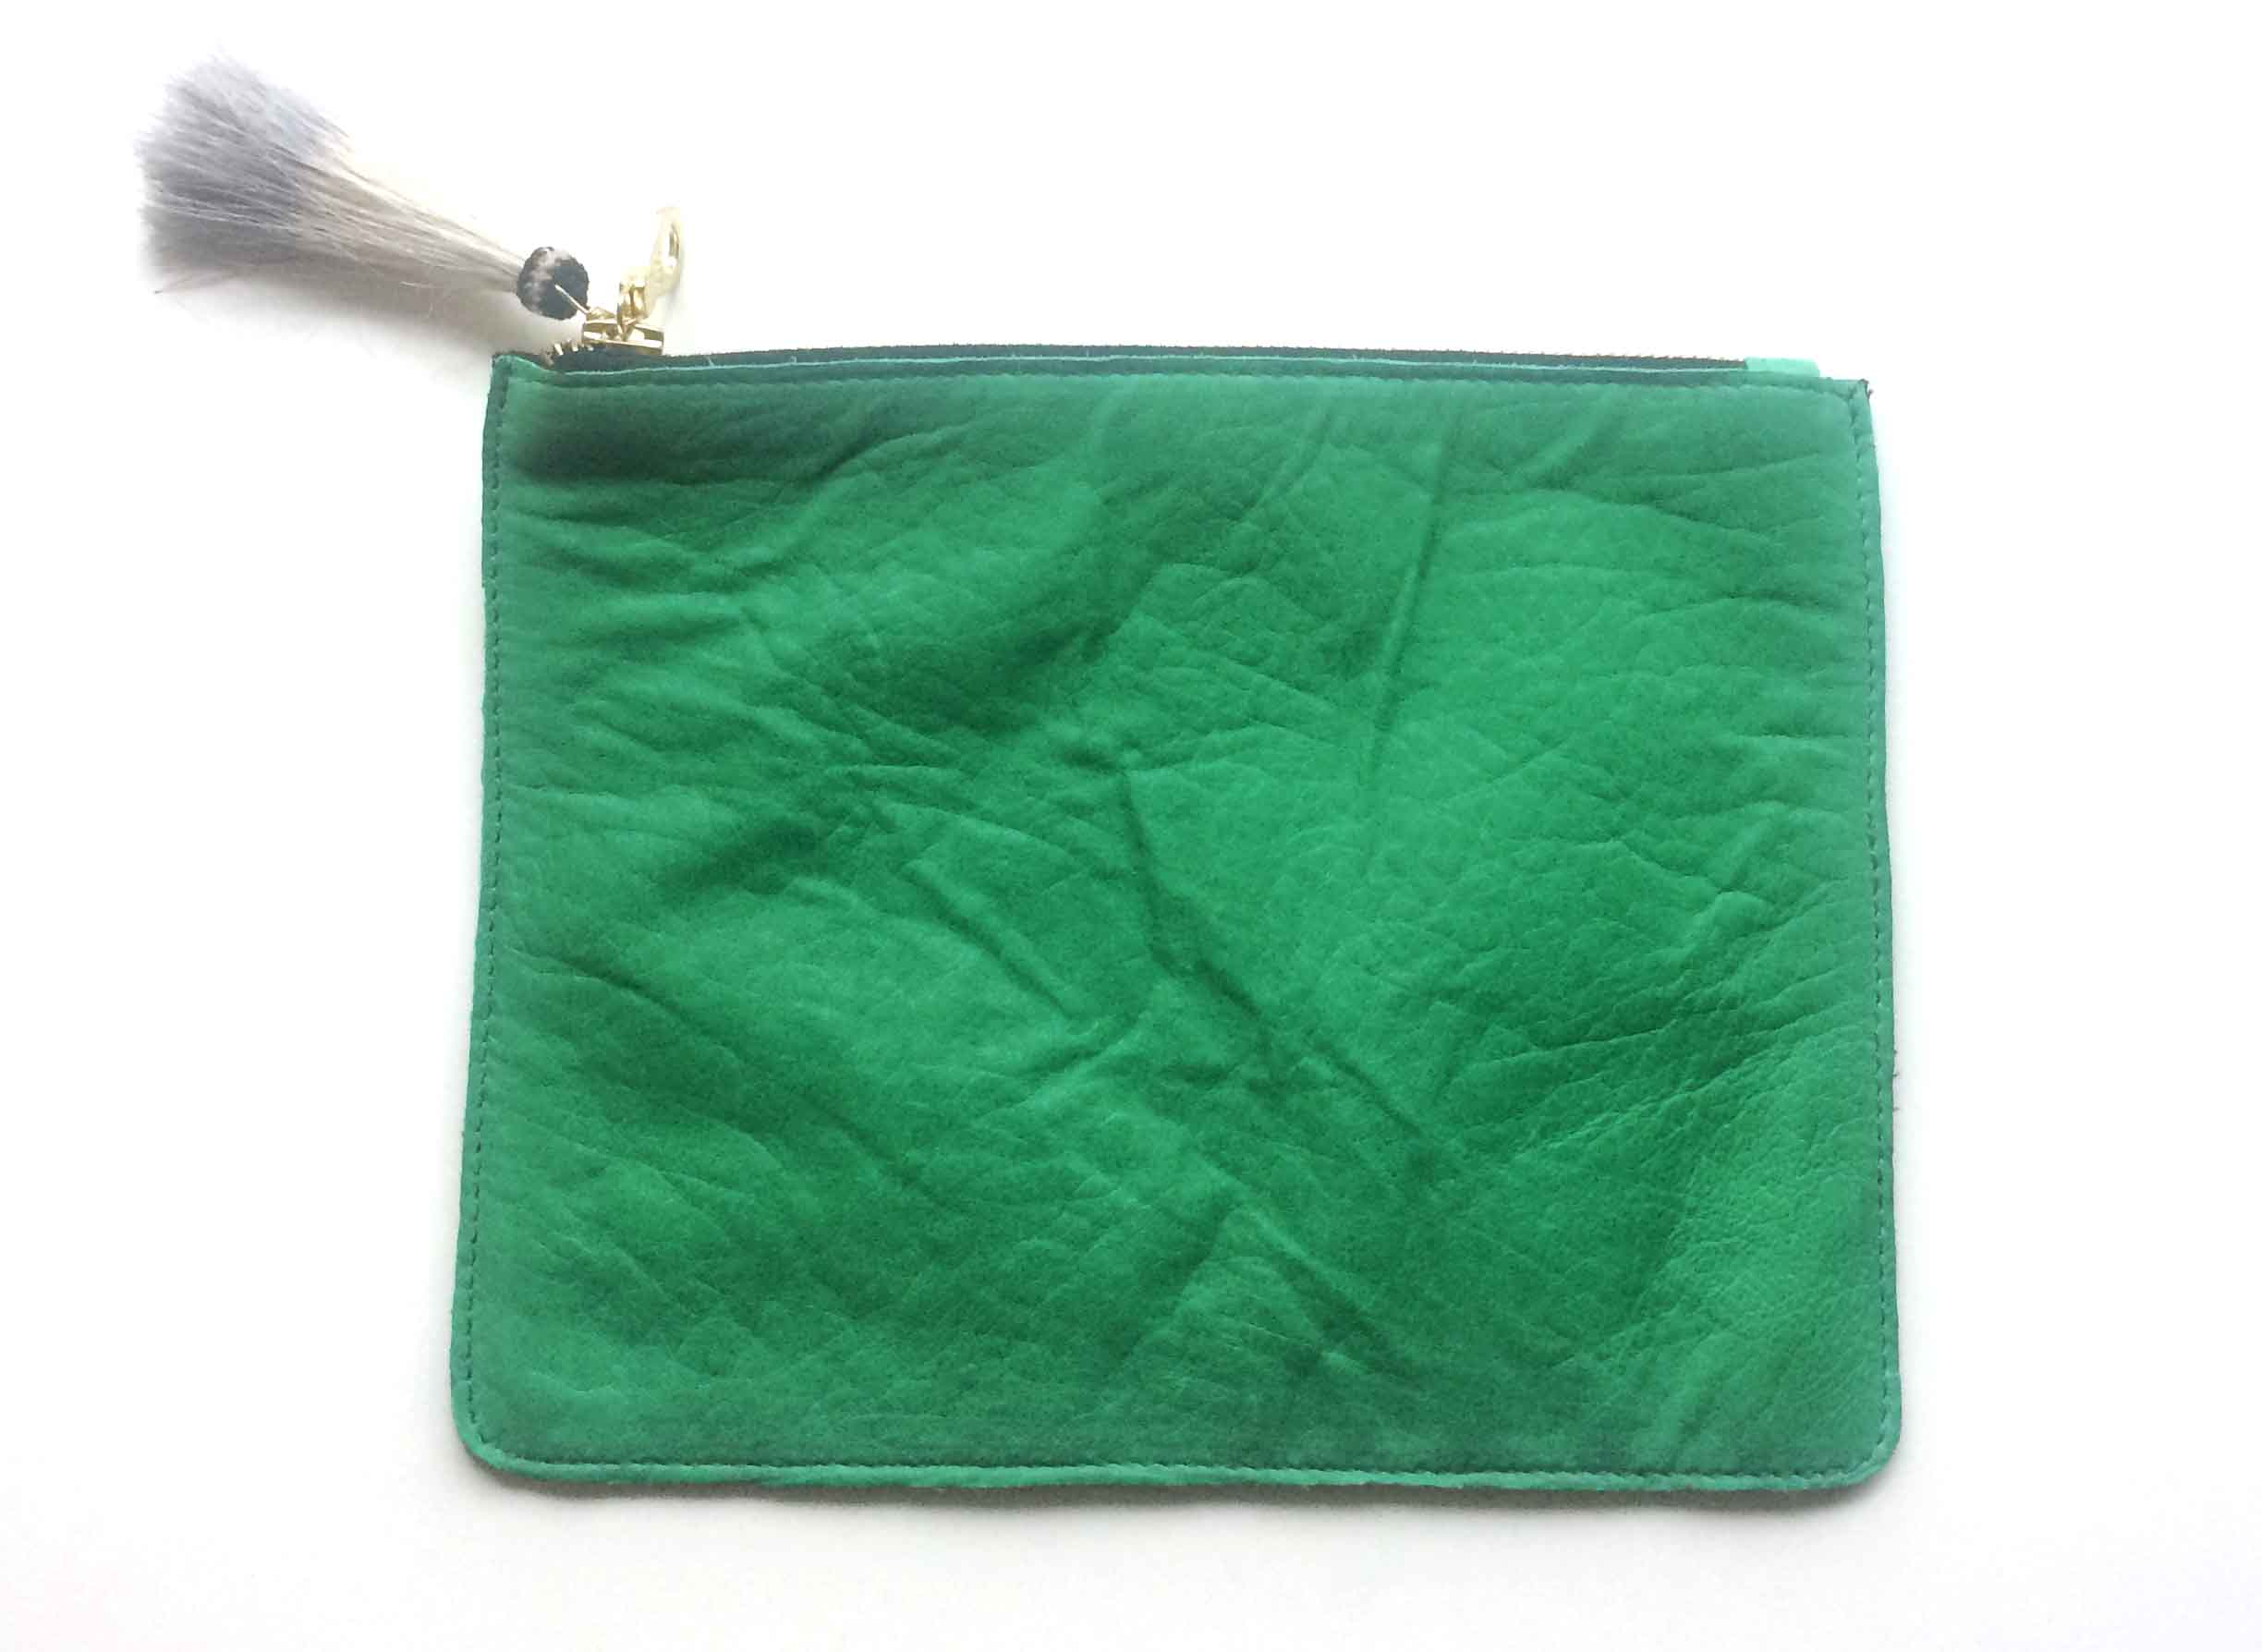 Moors Pouch